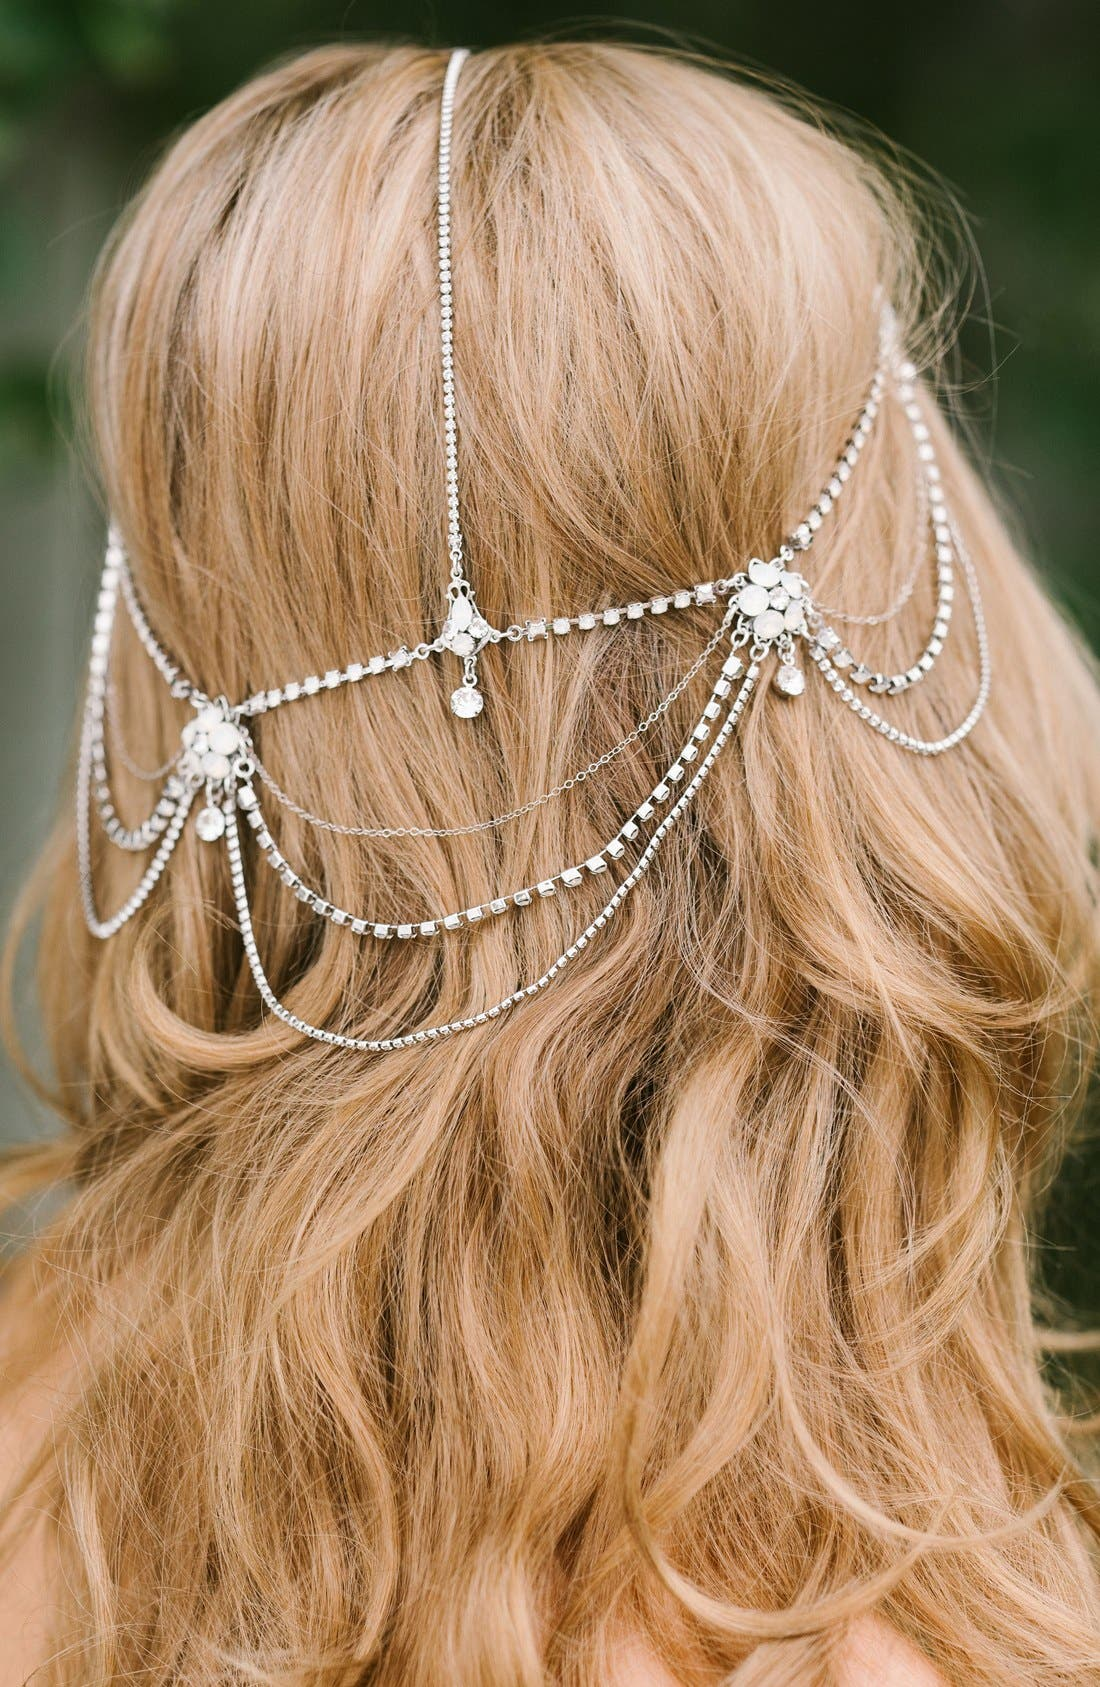 'Madeline' Floral Crystal Hair Chain,                             Alternate thumbnail 2, color,                             Crystal/ White Opal